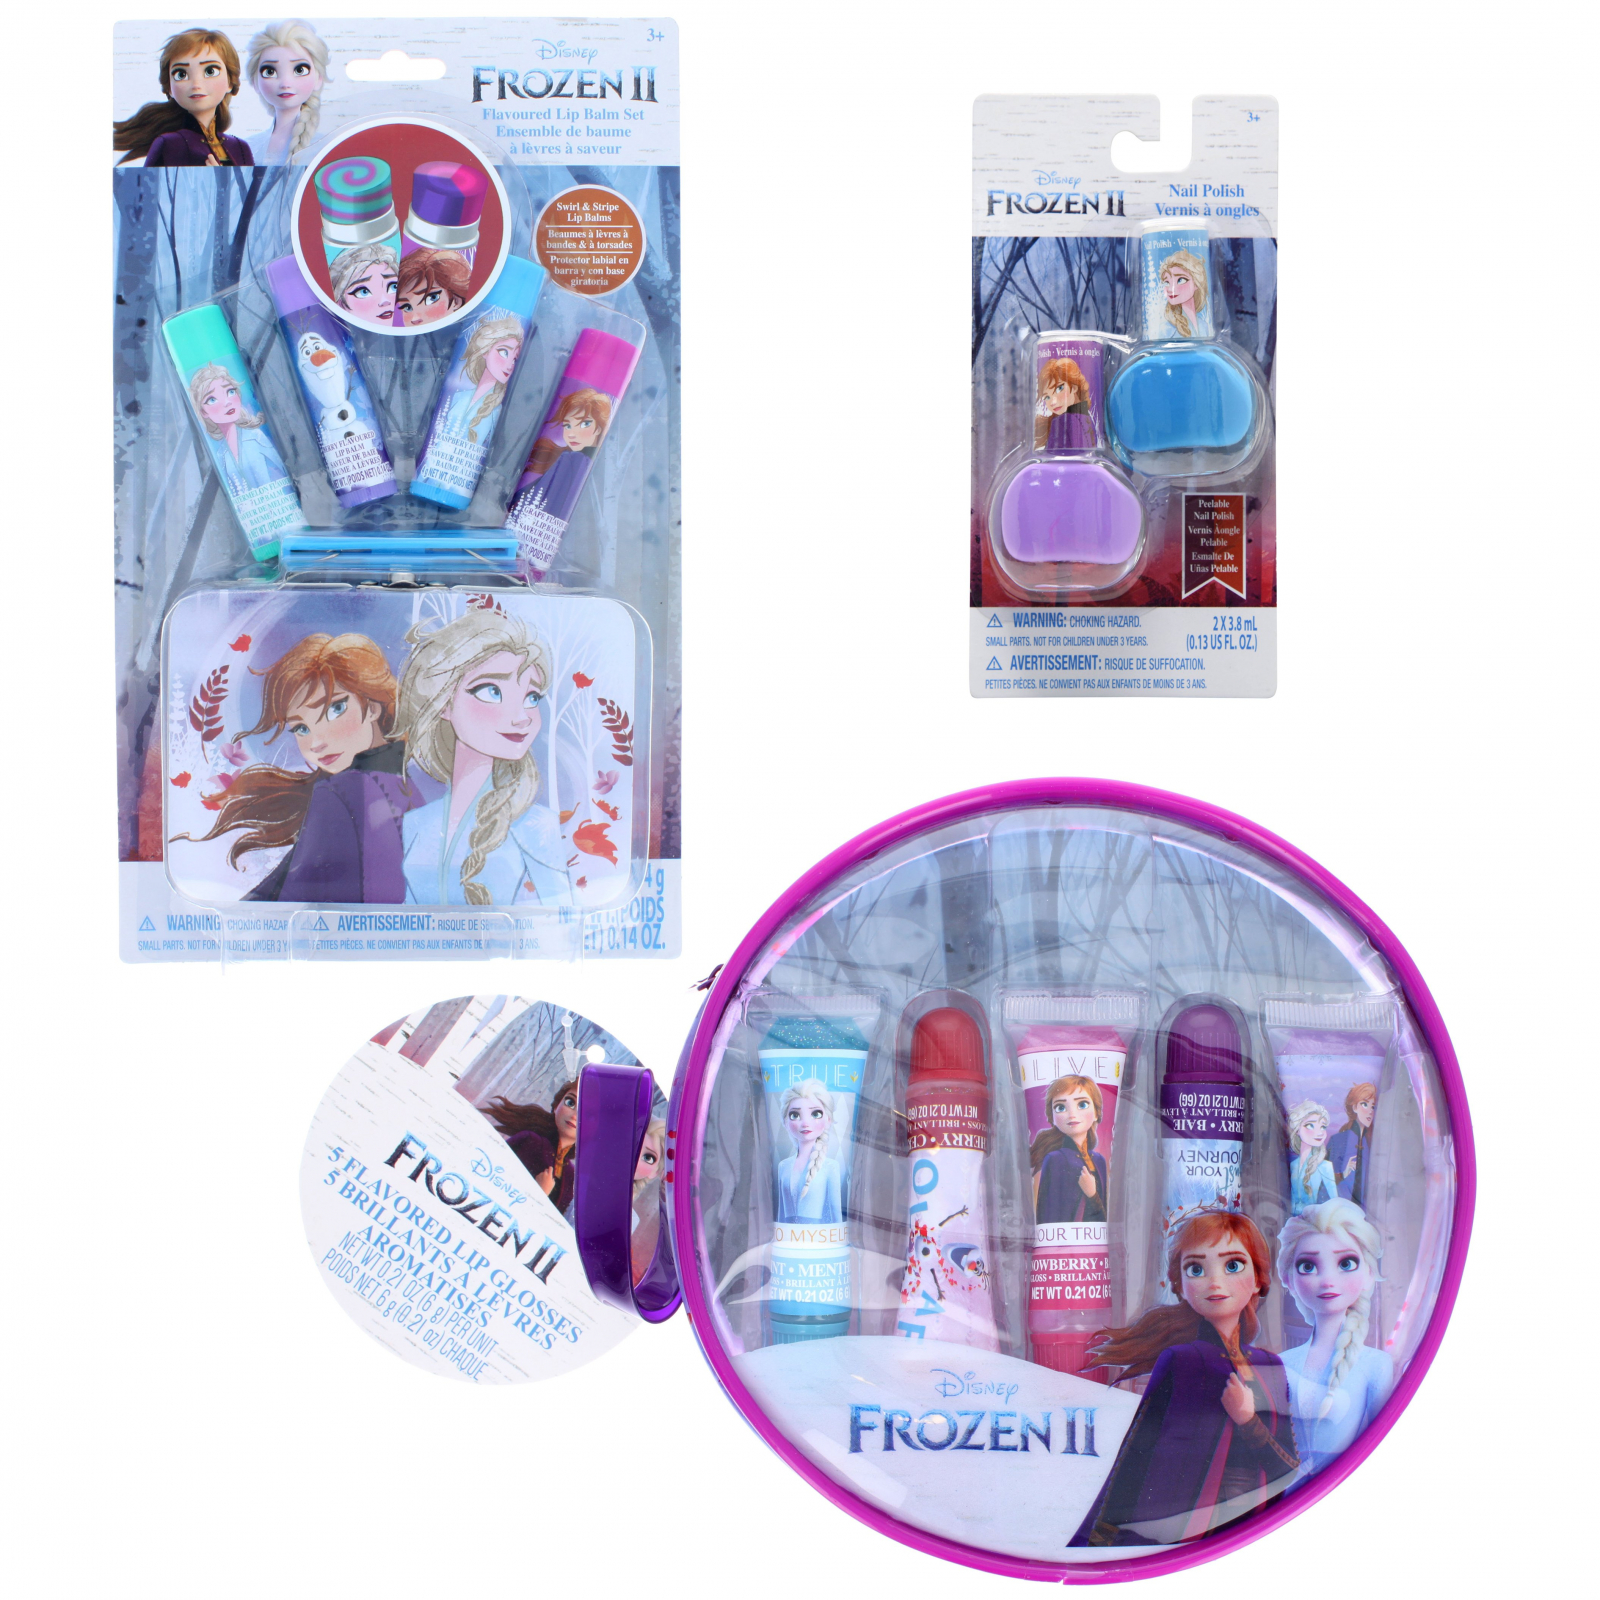 Frozen 2 Makeup Gift Set Includes Nail Polishes and Lip Balm